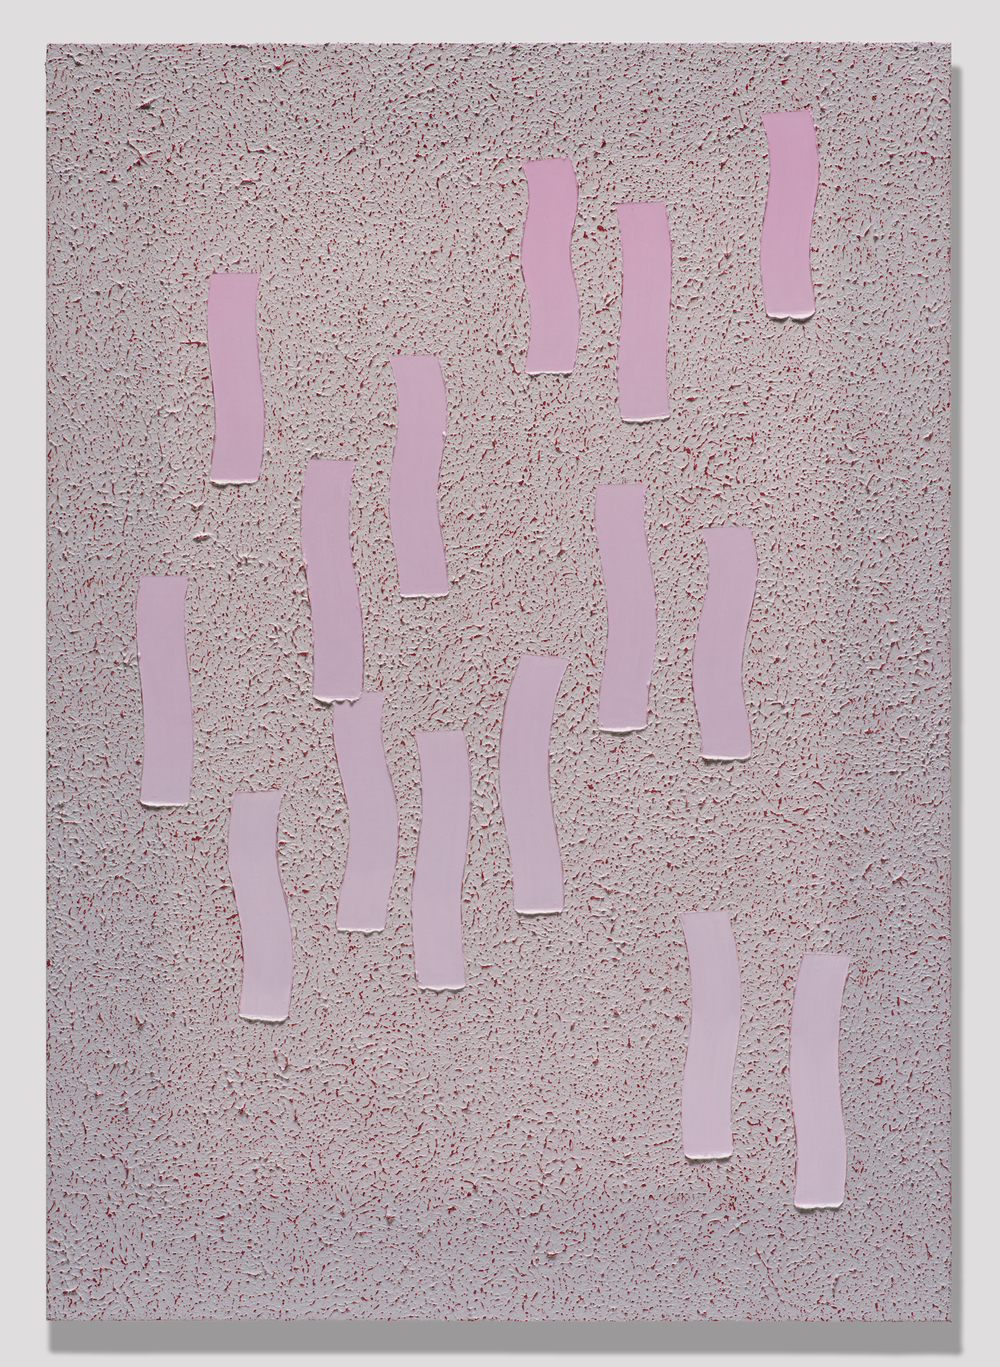 "Alex Olson  Disperse  2013   Oil and modeling paste on linen   41"" x 29"" AO144"